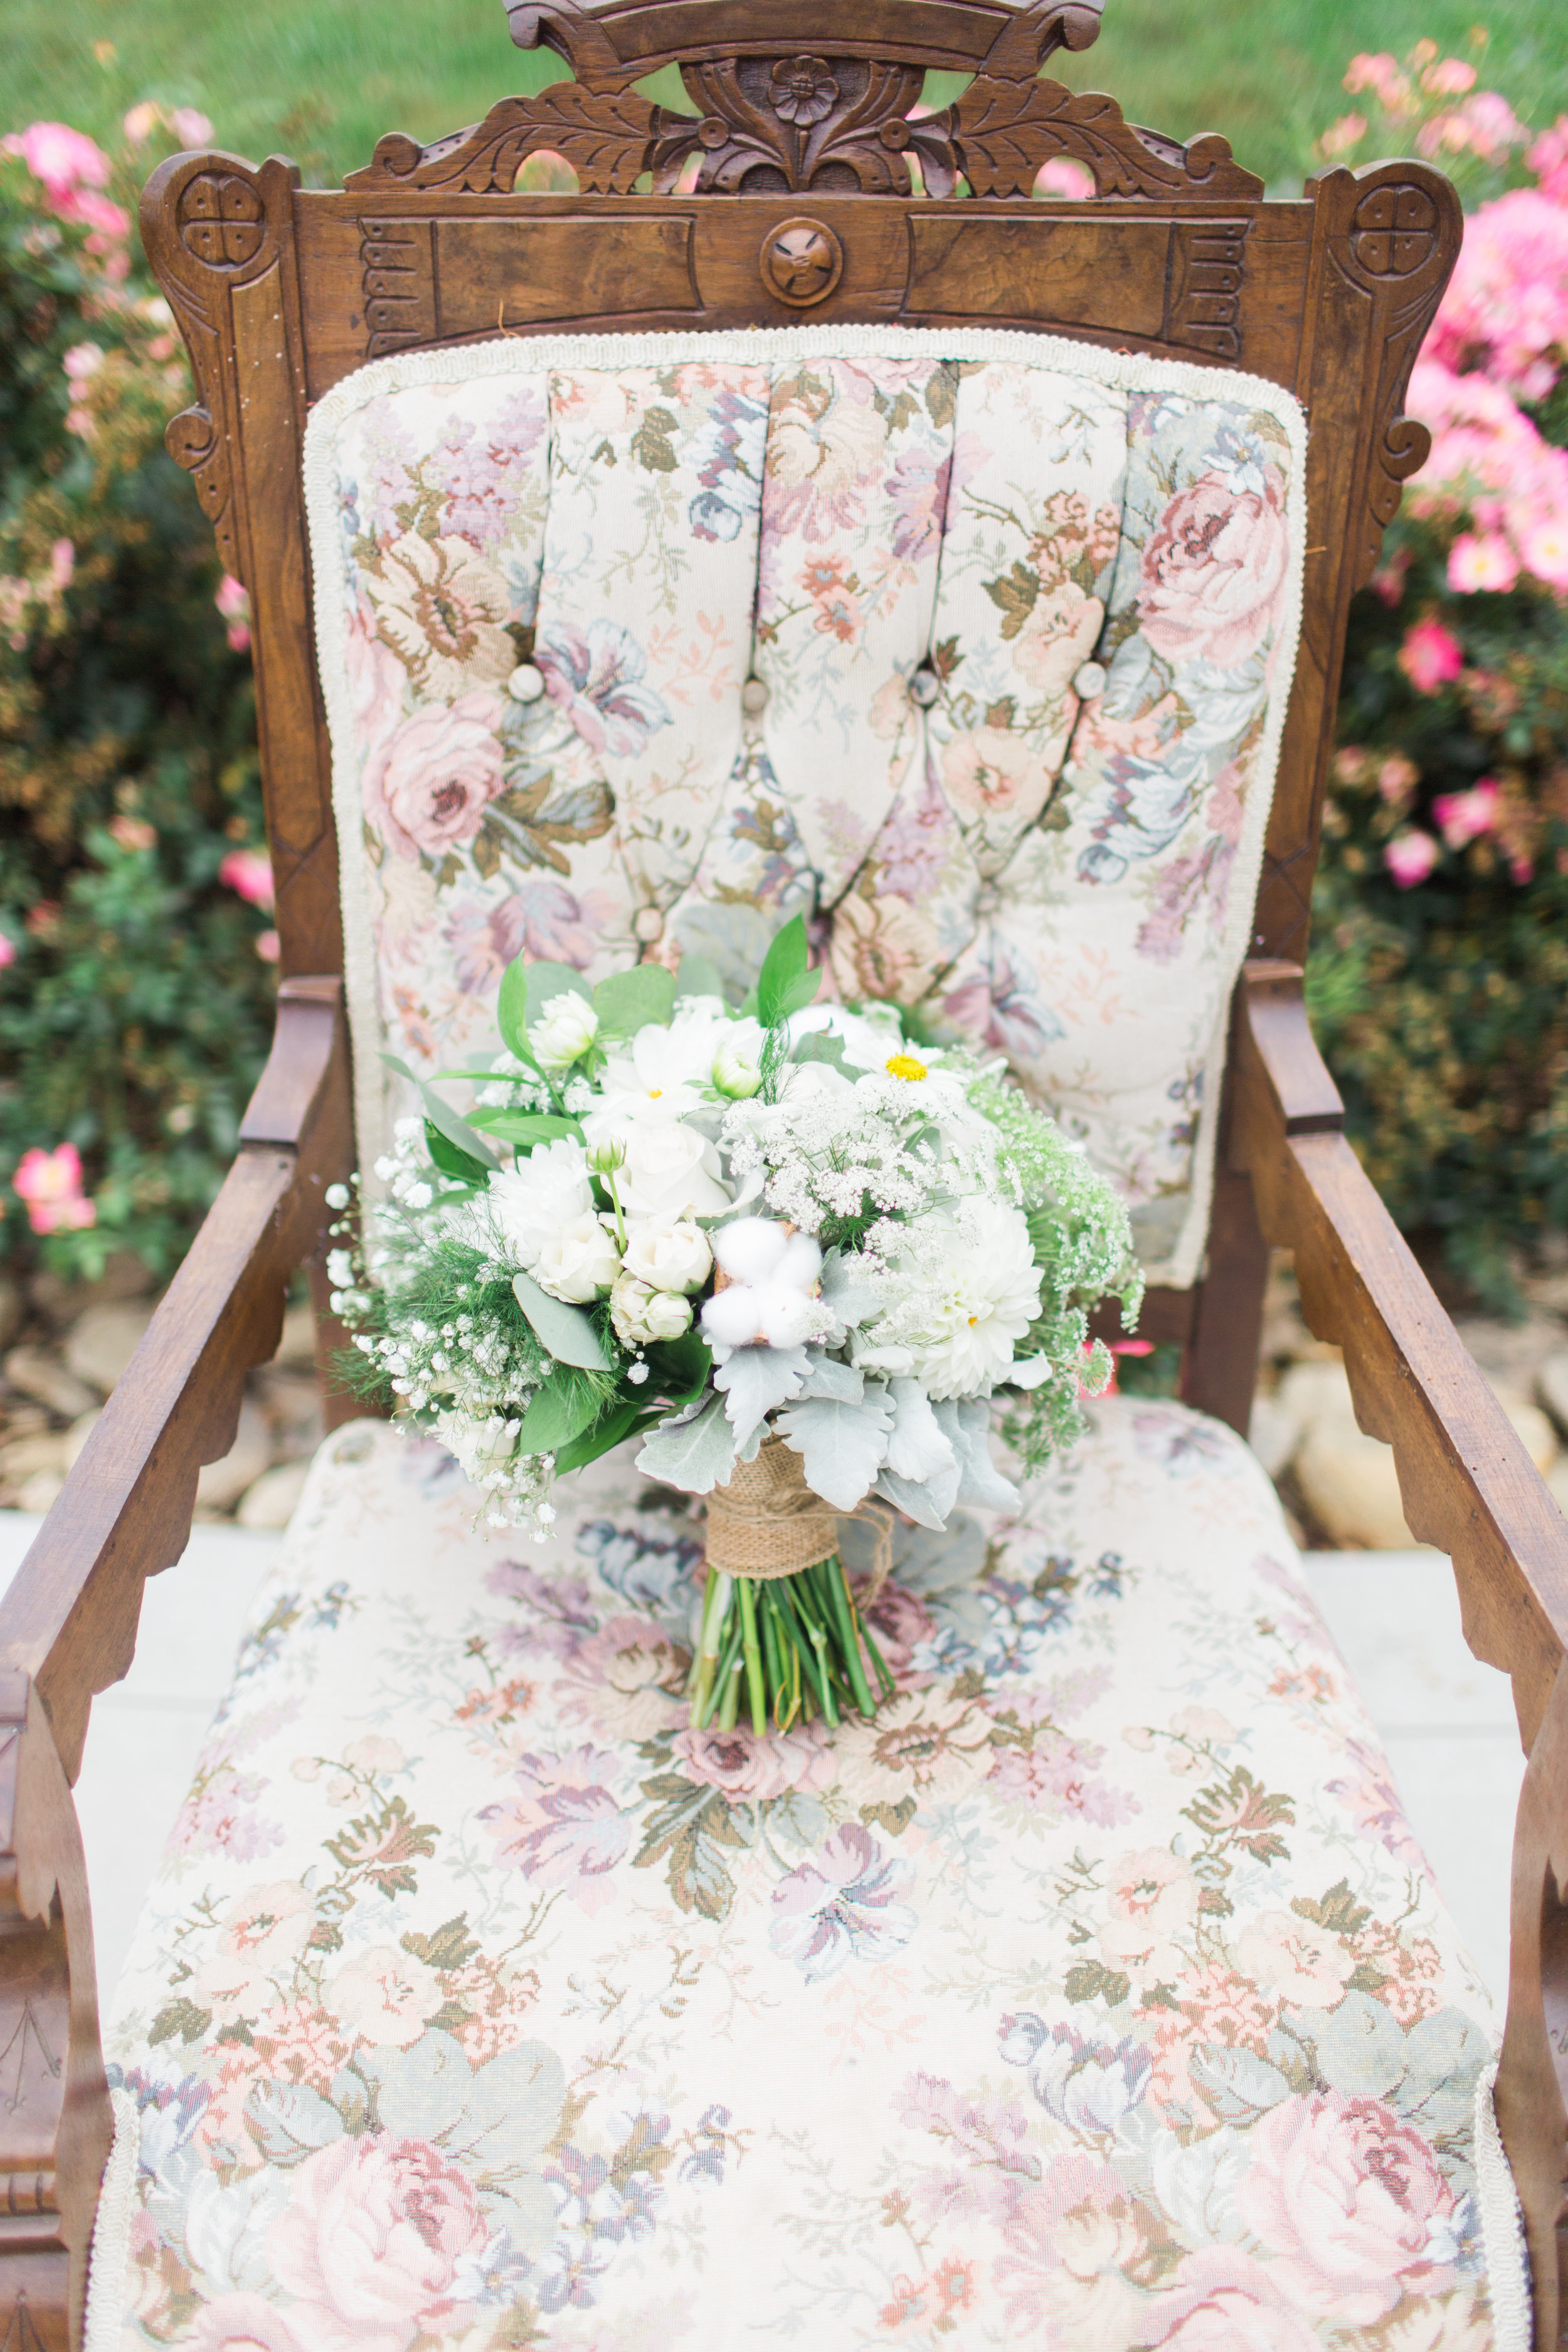 Think unique - Add cotton blossoms,pine cones, an artichoke bloom, or a mini pineapple.Maybe even a bouquet entirely made of greenery.